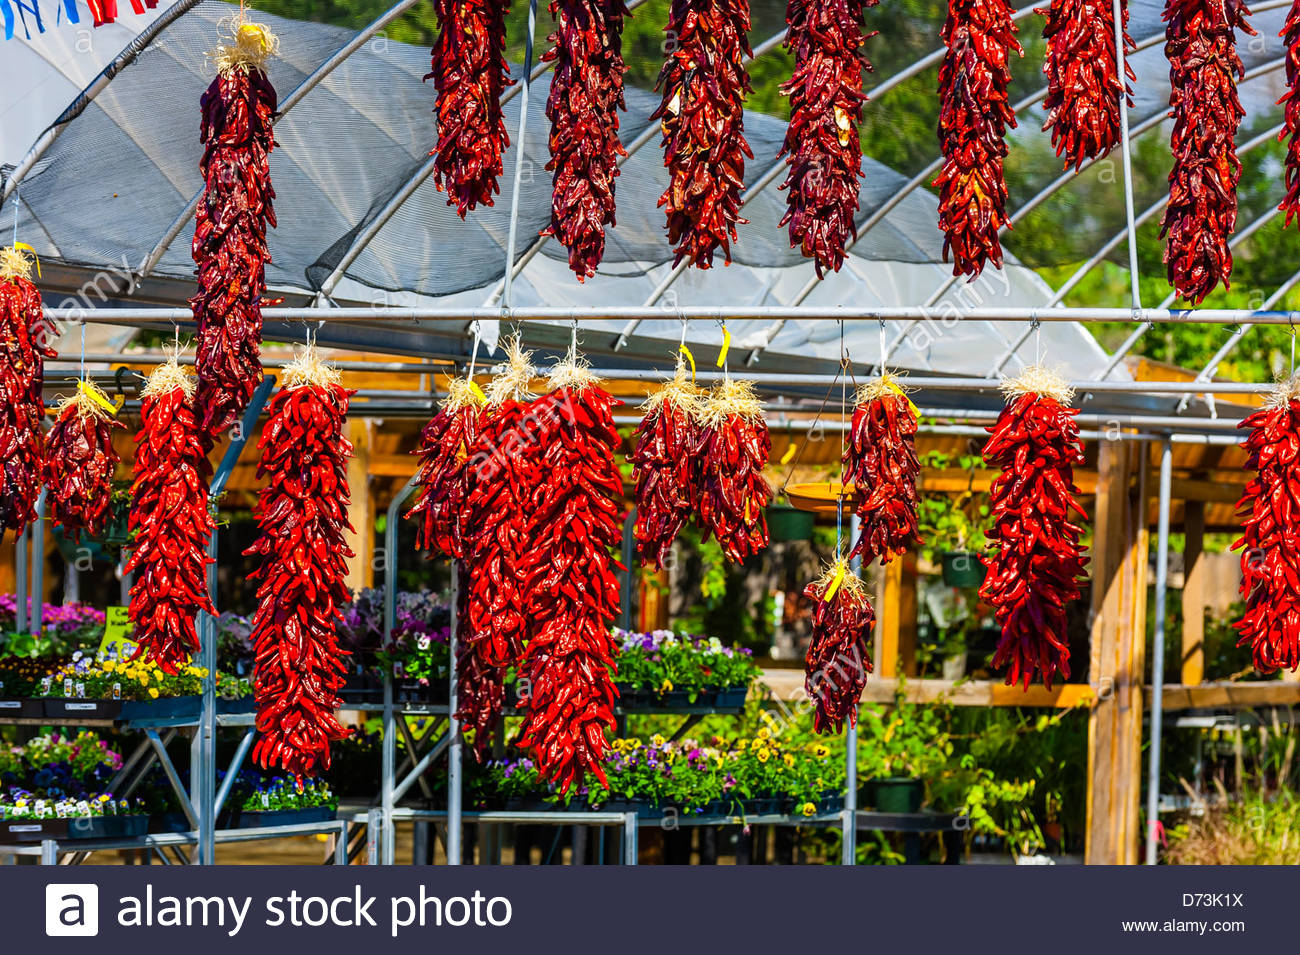 Ristras (drying red chile pepper pods), Jericho Nursery, Albuquerque, New Mexico USA - Stock Image